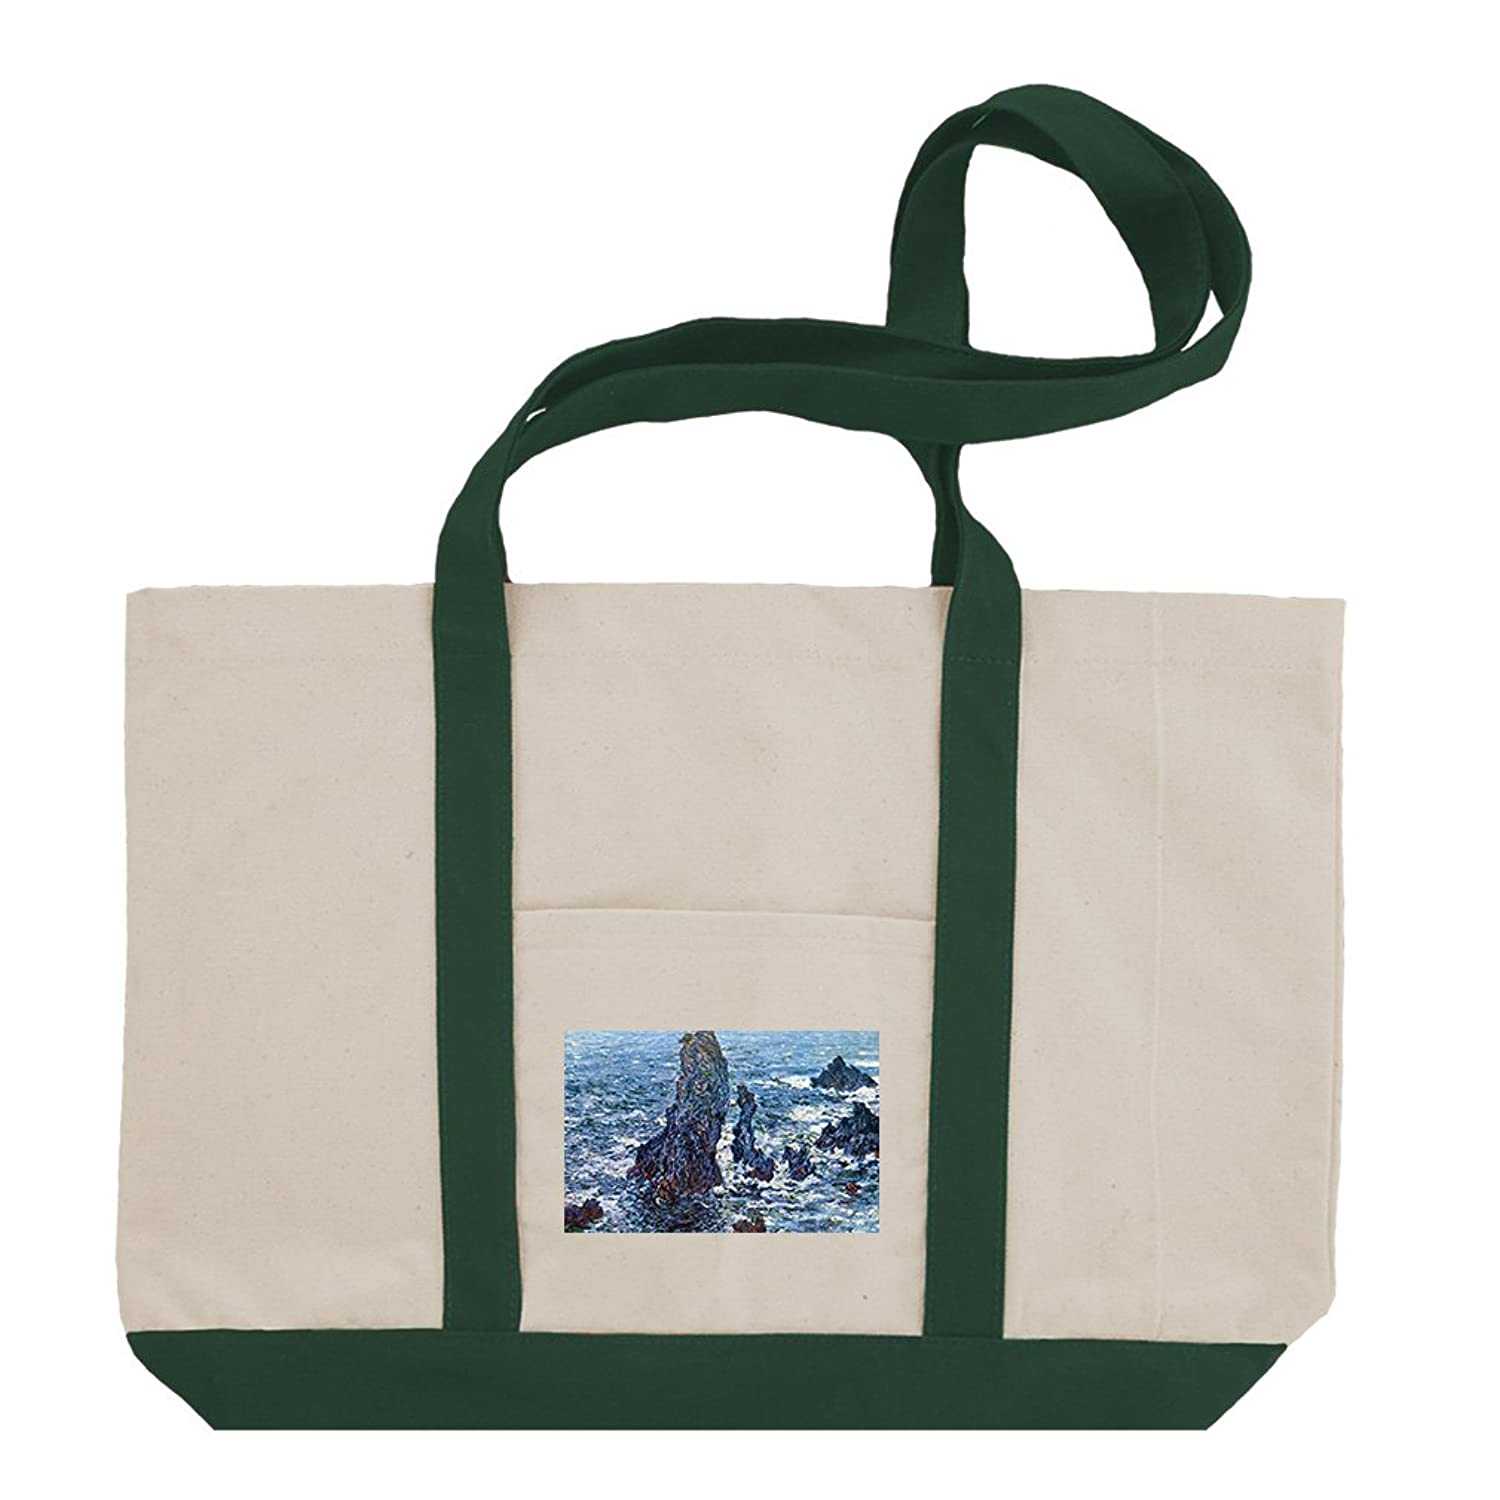 Rue Mosnier With Flags (Manet) Cotton Canvas Boat Tote Bag Tote